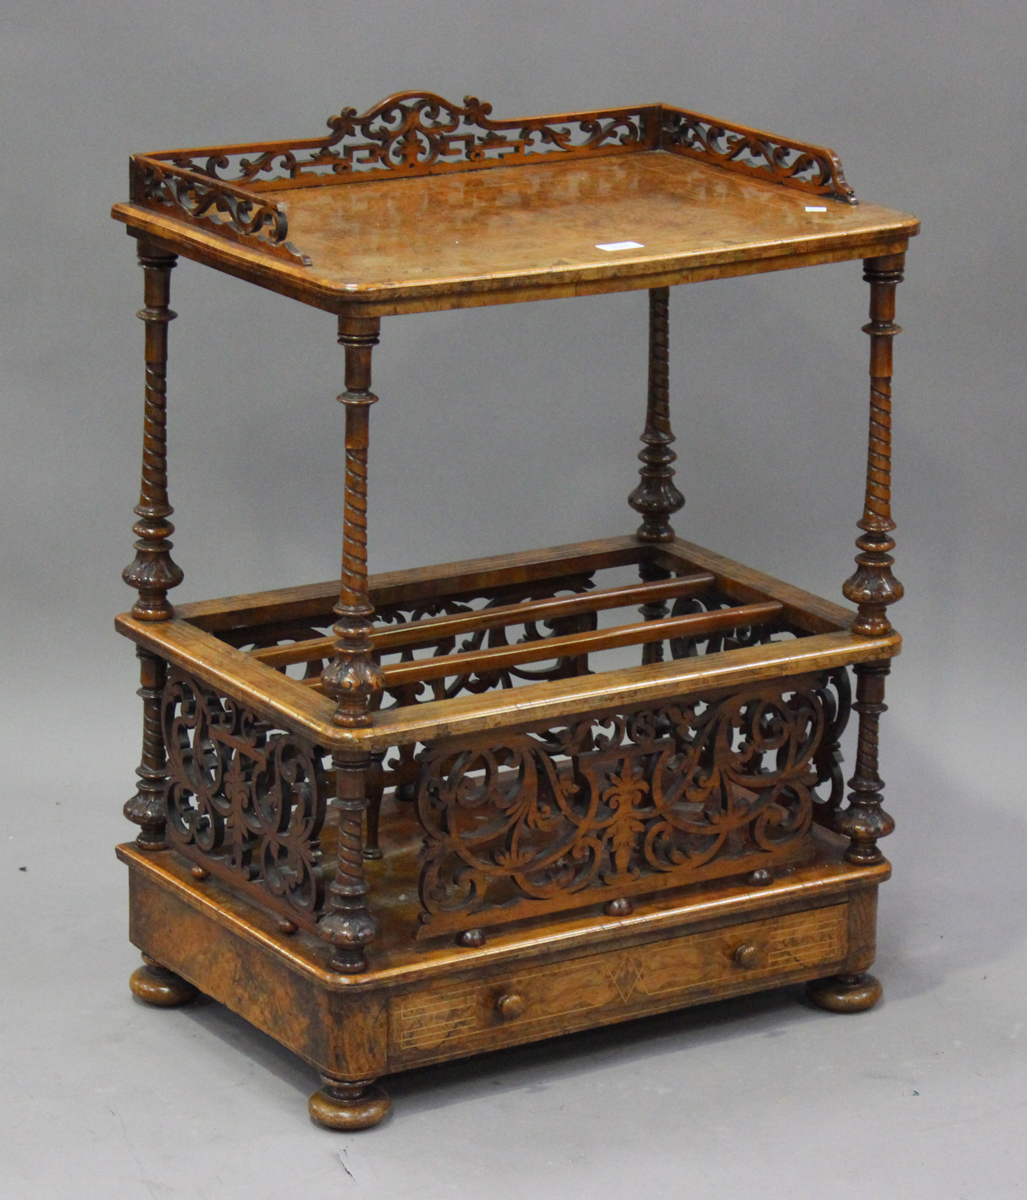 A mid-Victorian burr walnut and boxwood inlaid whatnot Canterbury with pierced fretwork